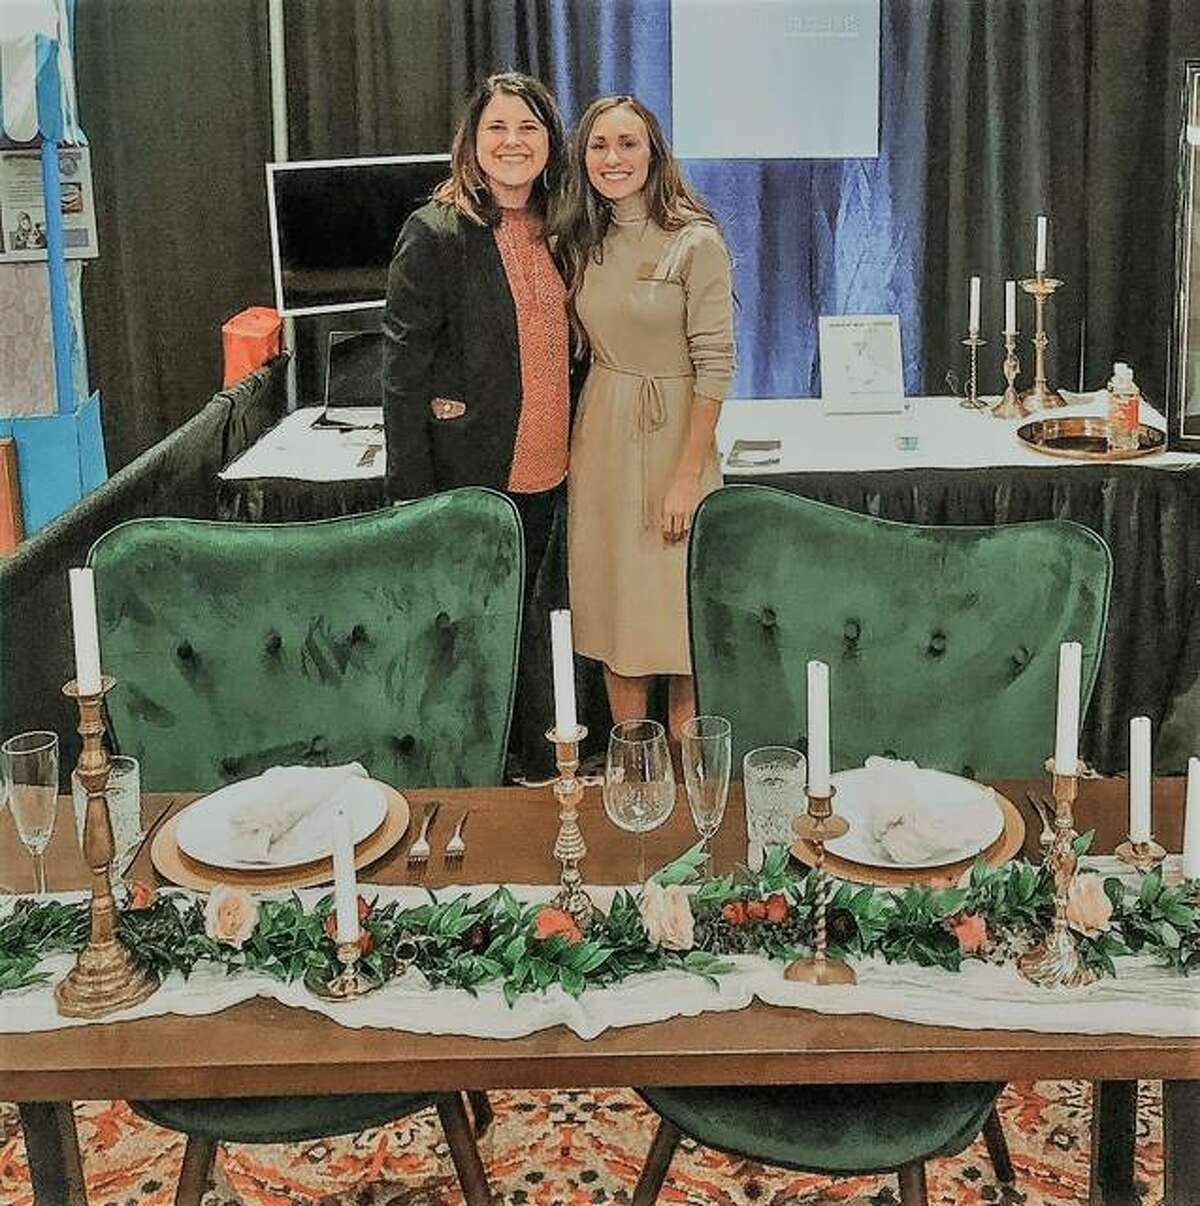 The Ink House owners Kristen Pfund, left, of Edwardsville, and Hannah Fink, of Glen Carbon, stand at the new venue's booth at the pair's first wedding show as vendors representing the event center. The downtown venue will host its first event for